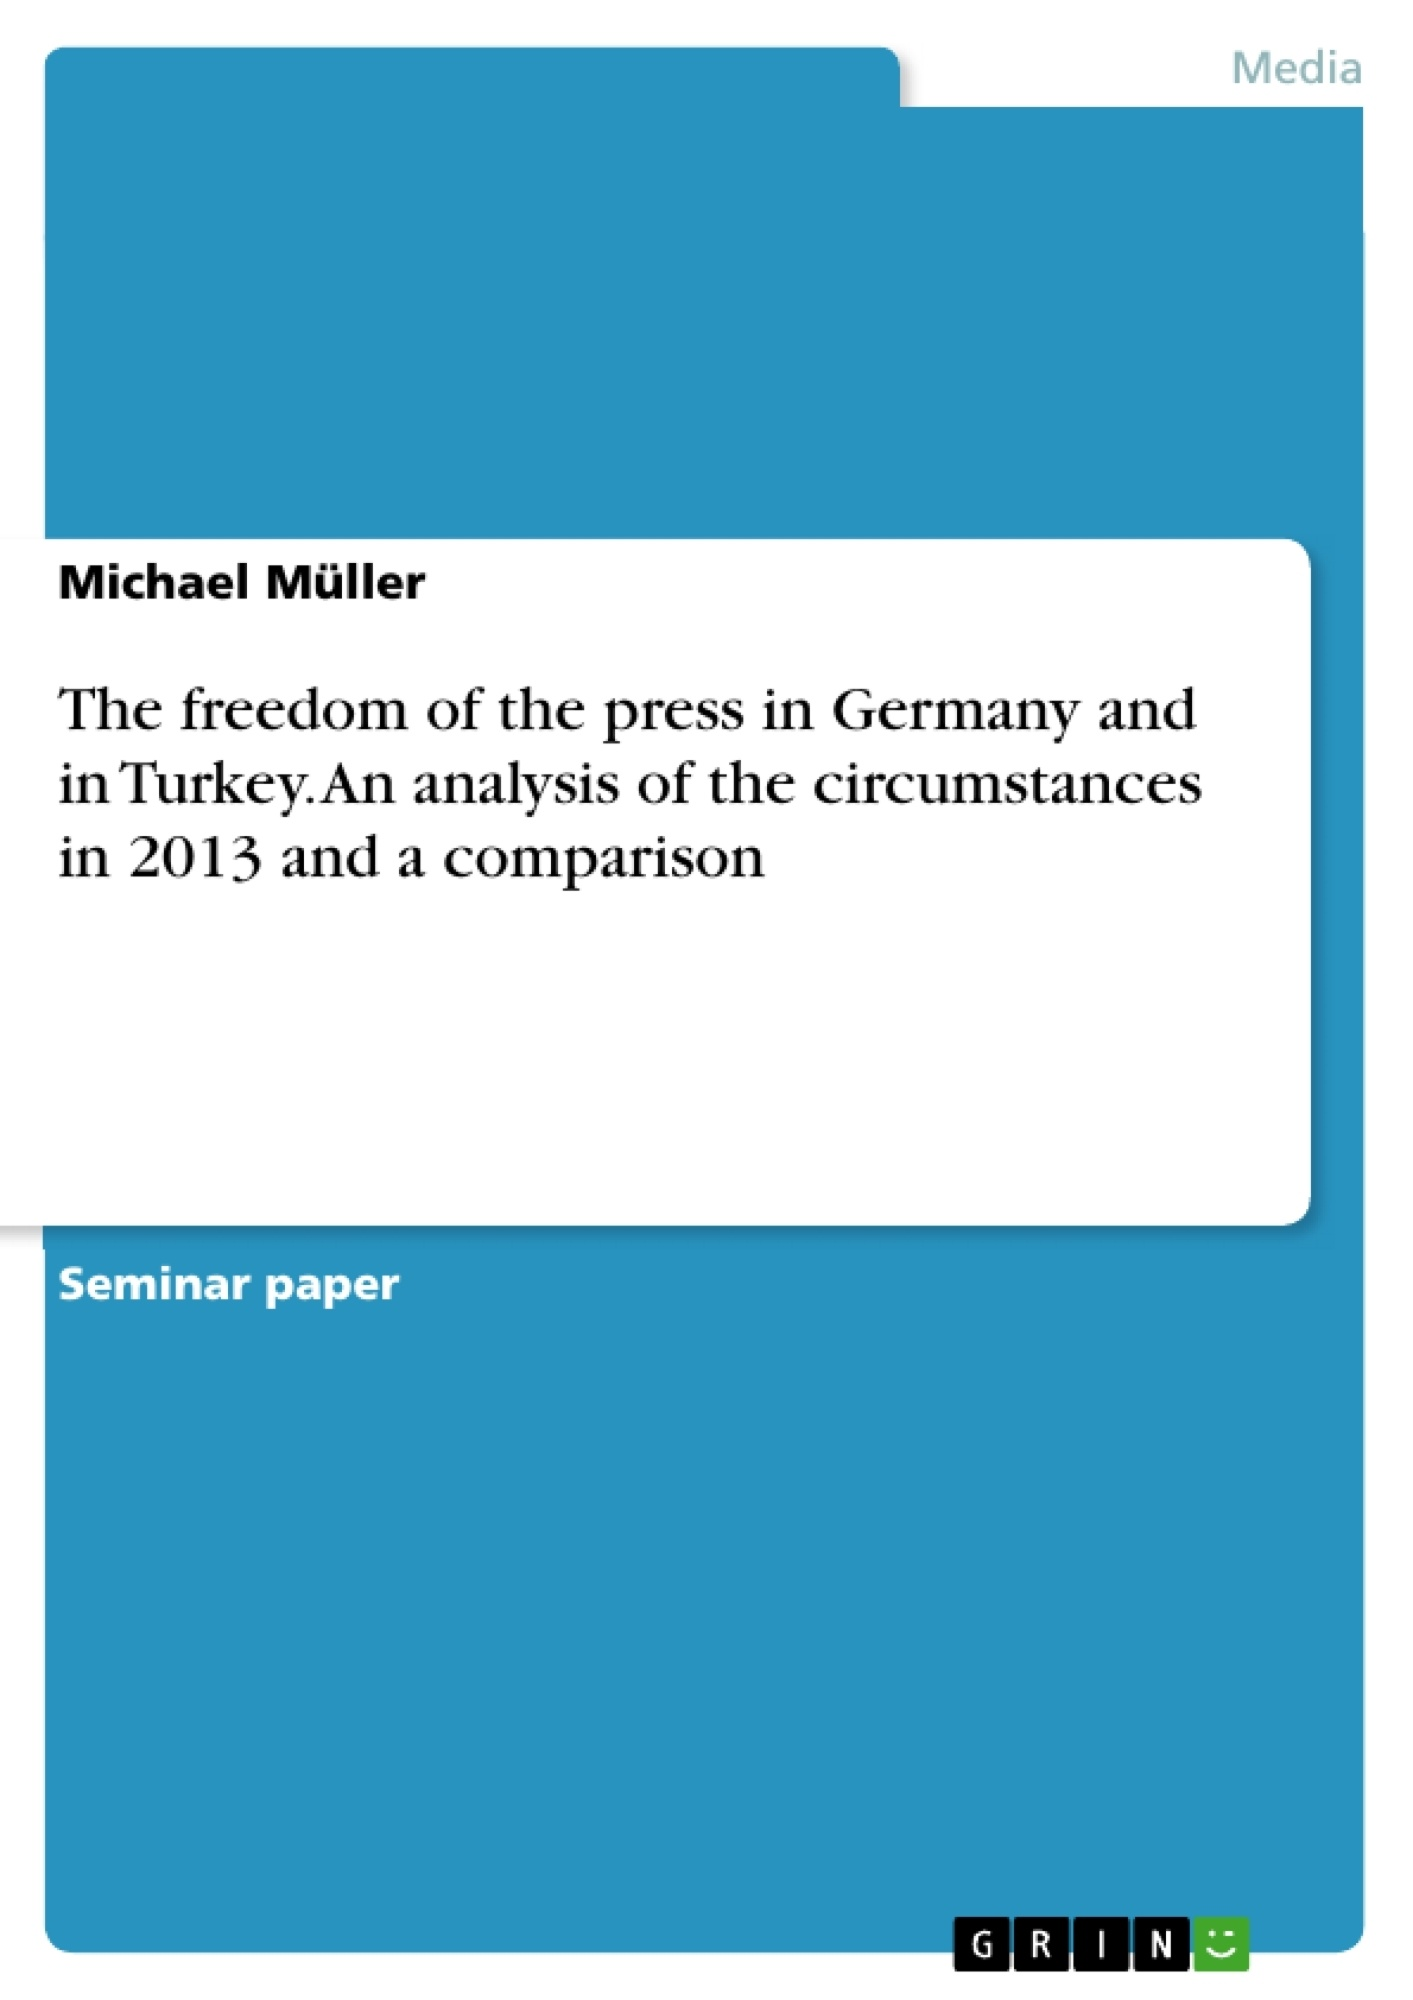 Title: The freedom of the press in Germany and in Turkey. An analysis of the circumstances in 2013 and a comparison